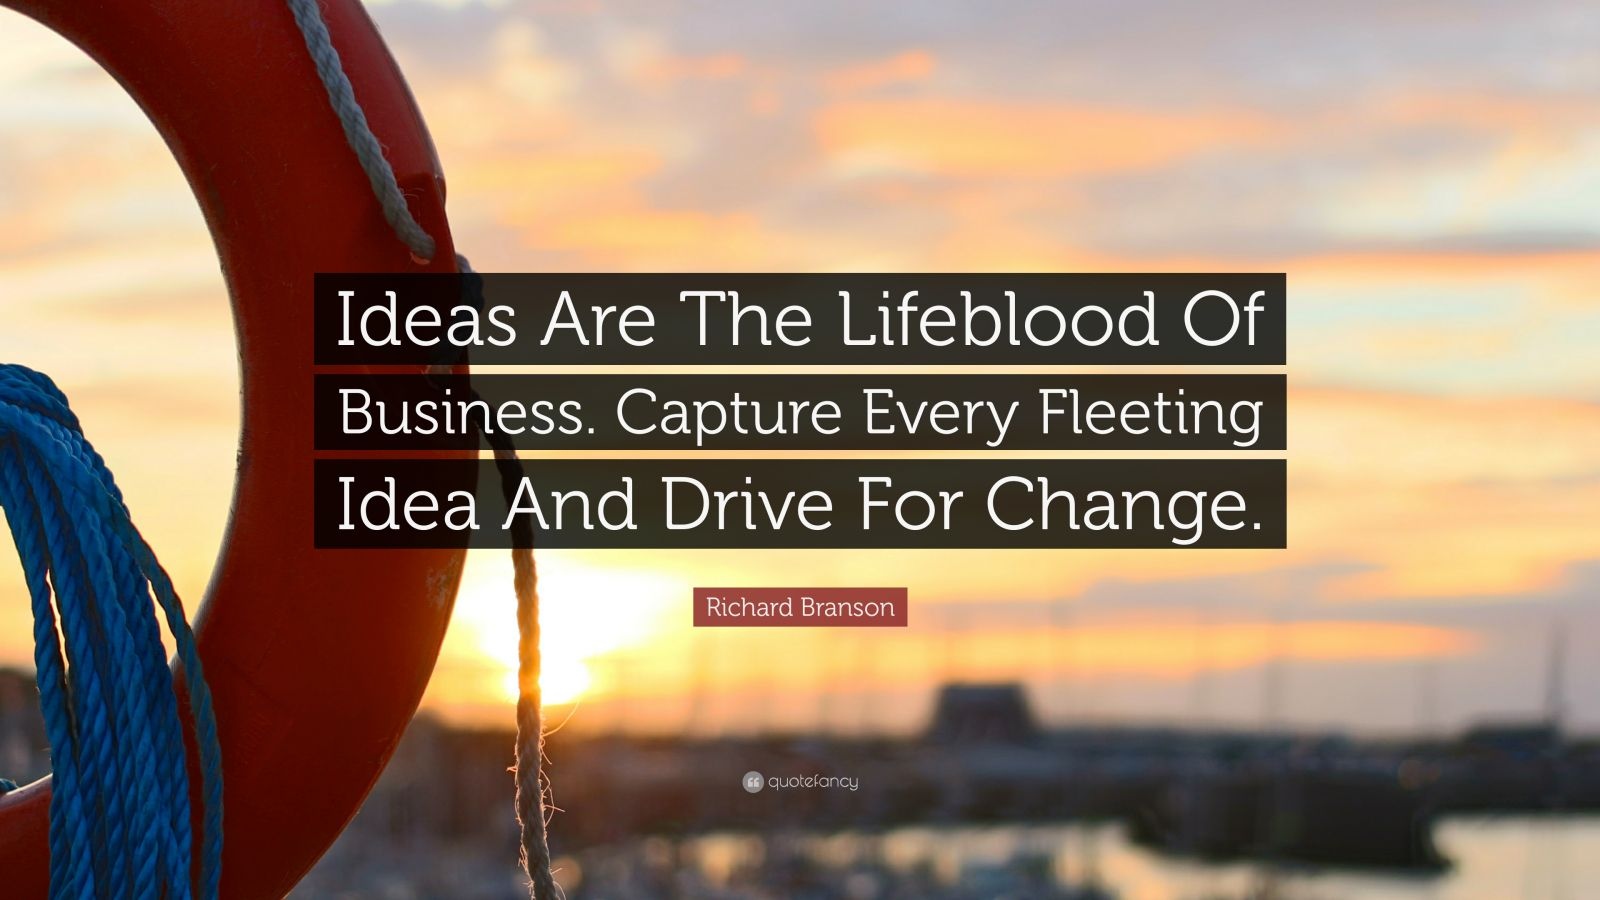 """Richard Branson Quote: """"Ideas Are The Lifeblood Of Business. Capture Every Fleeting Idea And Drive For Change."""""""